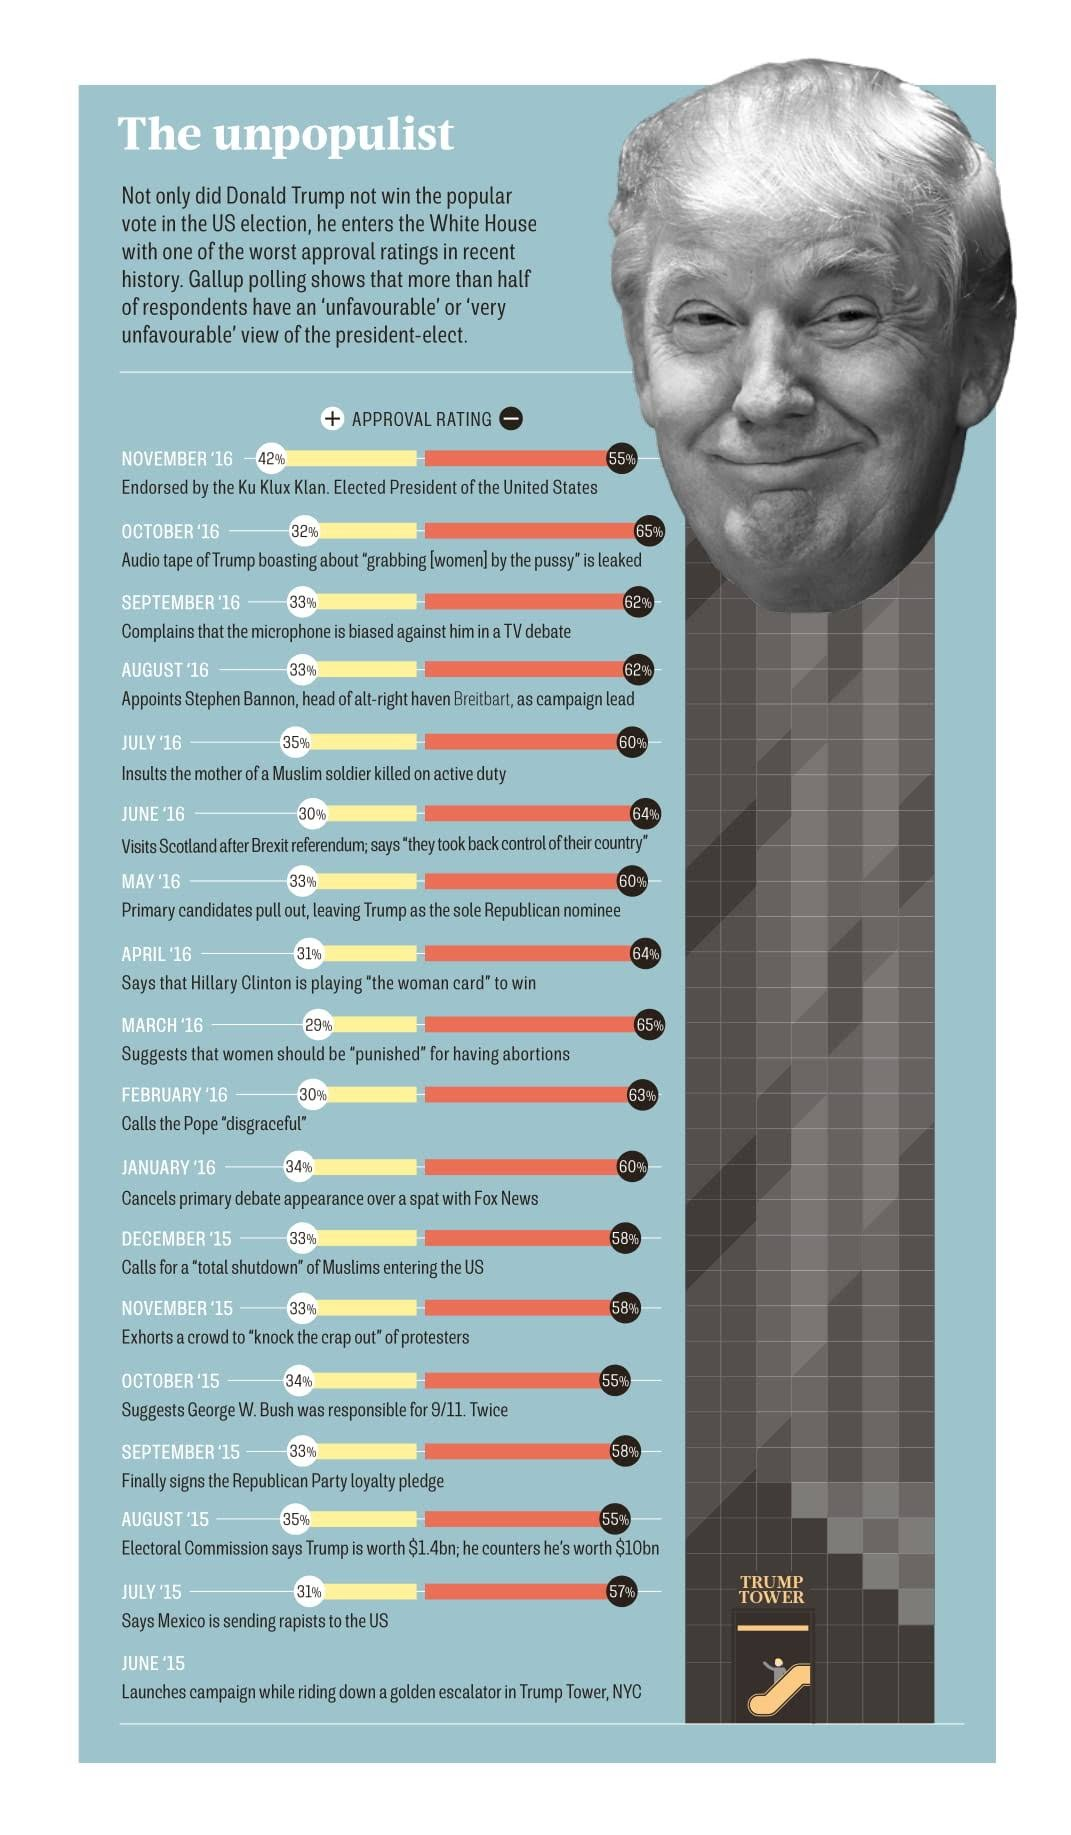 Trump the unpopulist #infographic